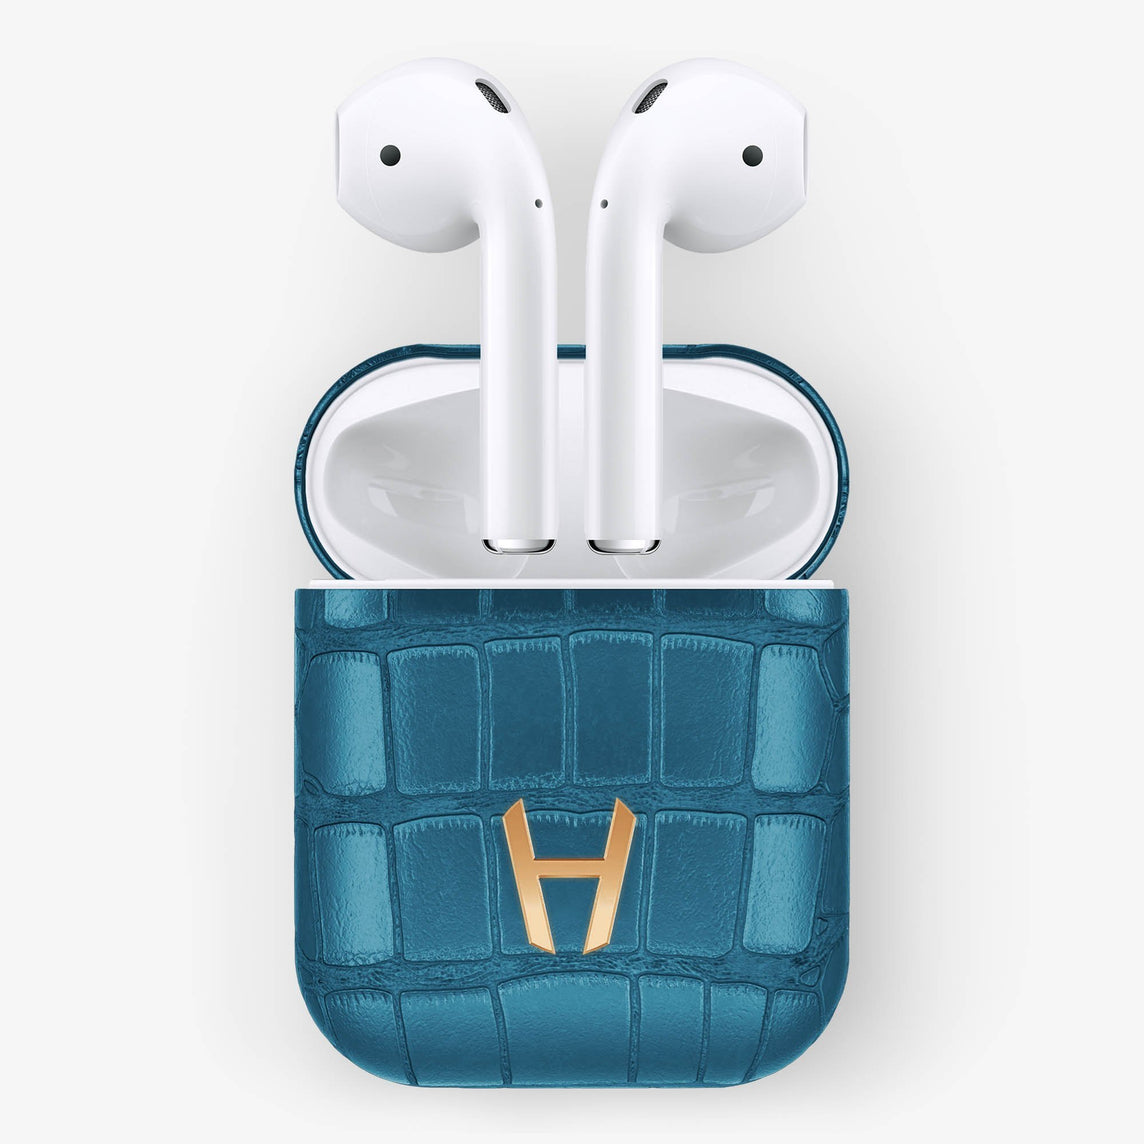 Teal Alligator Hadoro AirPods finishing rose gold - Hadoro Luxury Cases